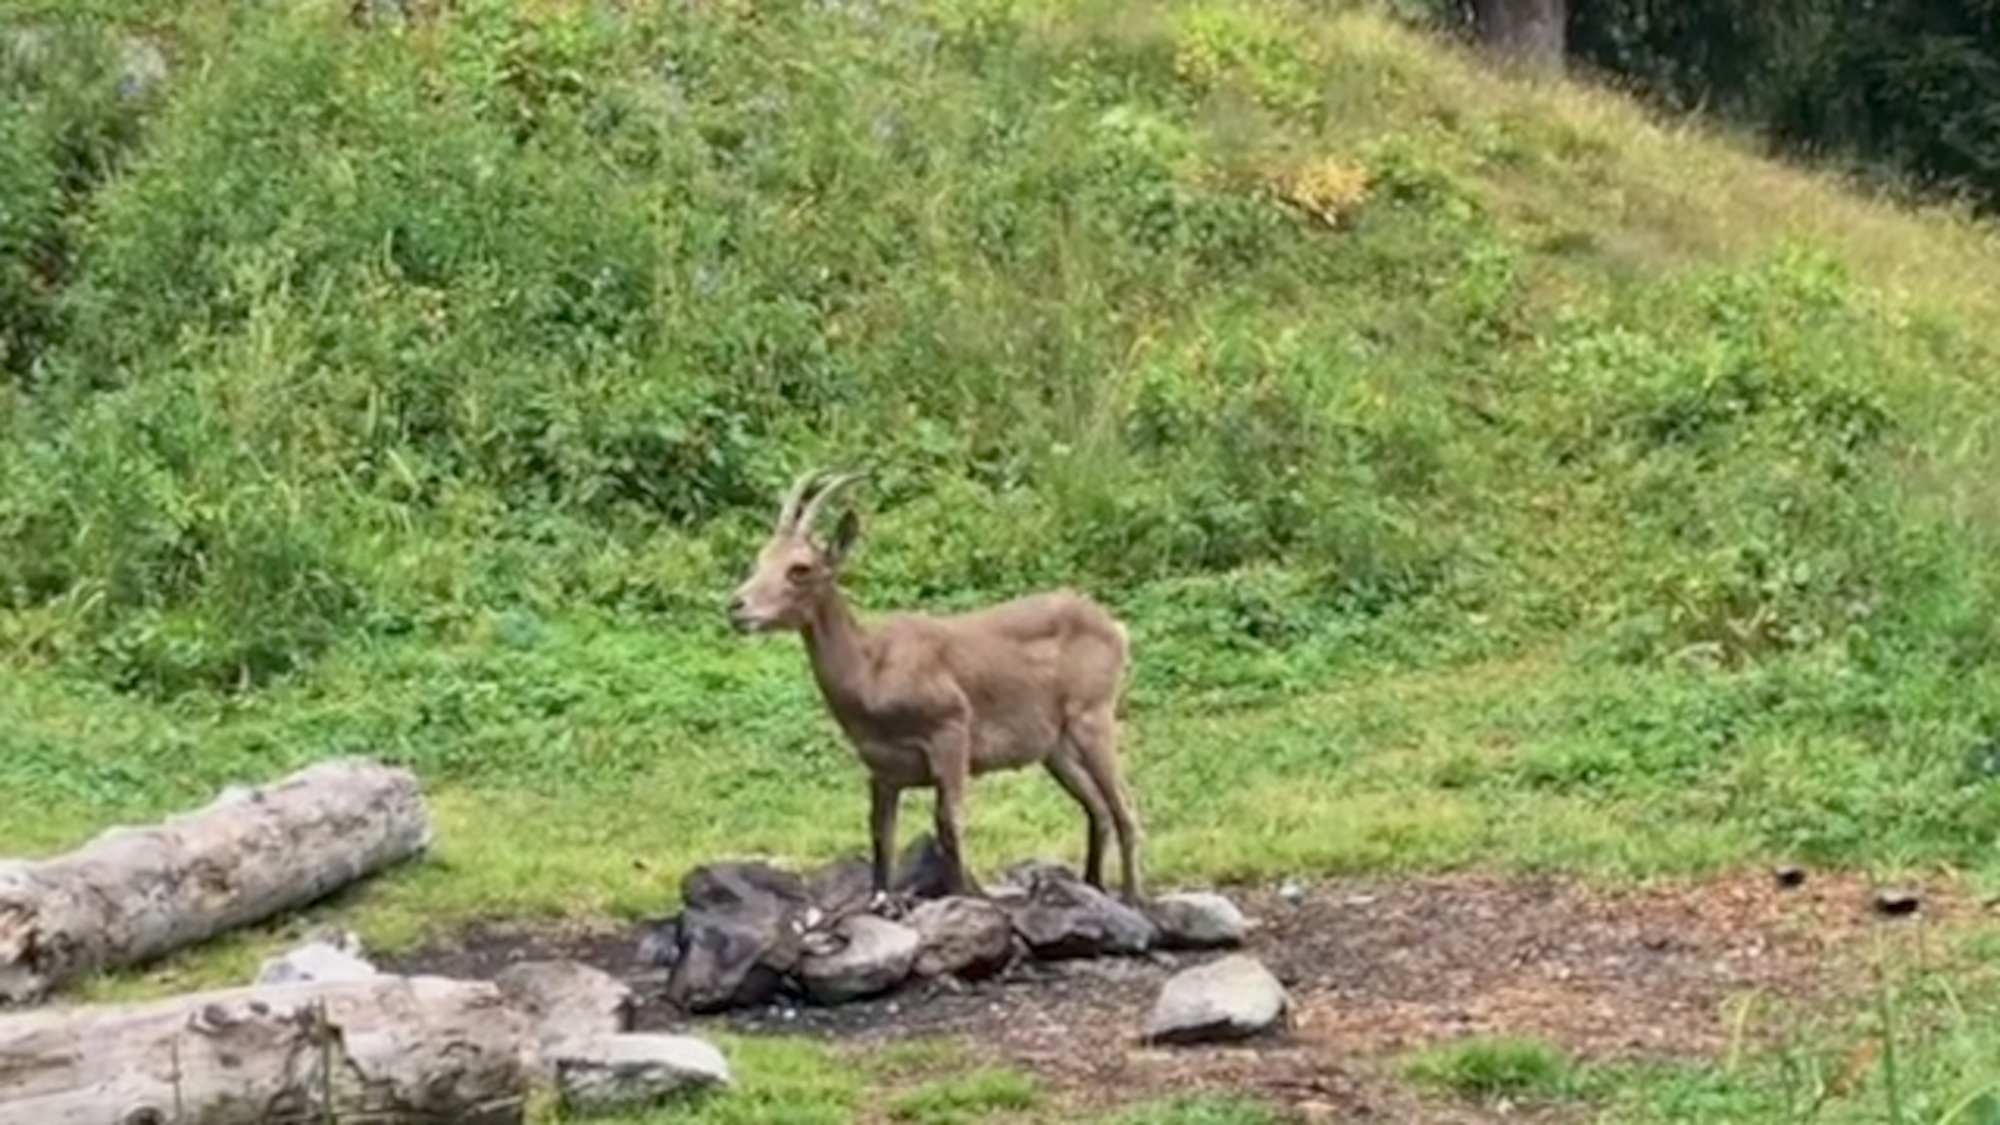 VIDEO: Campers Leave Plastic Behind For Goats To Eat